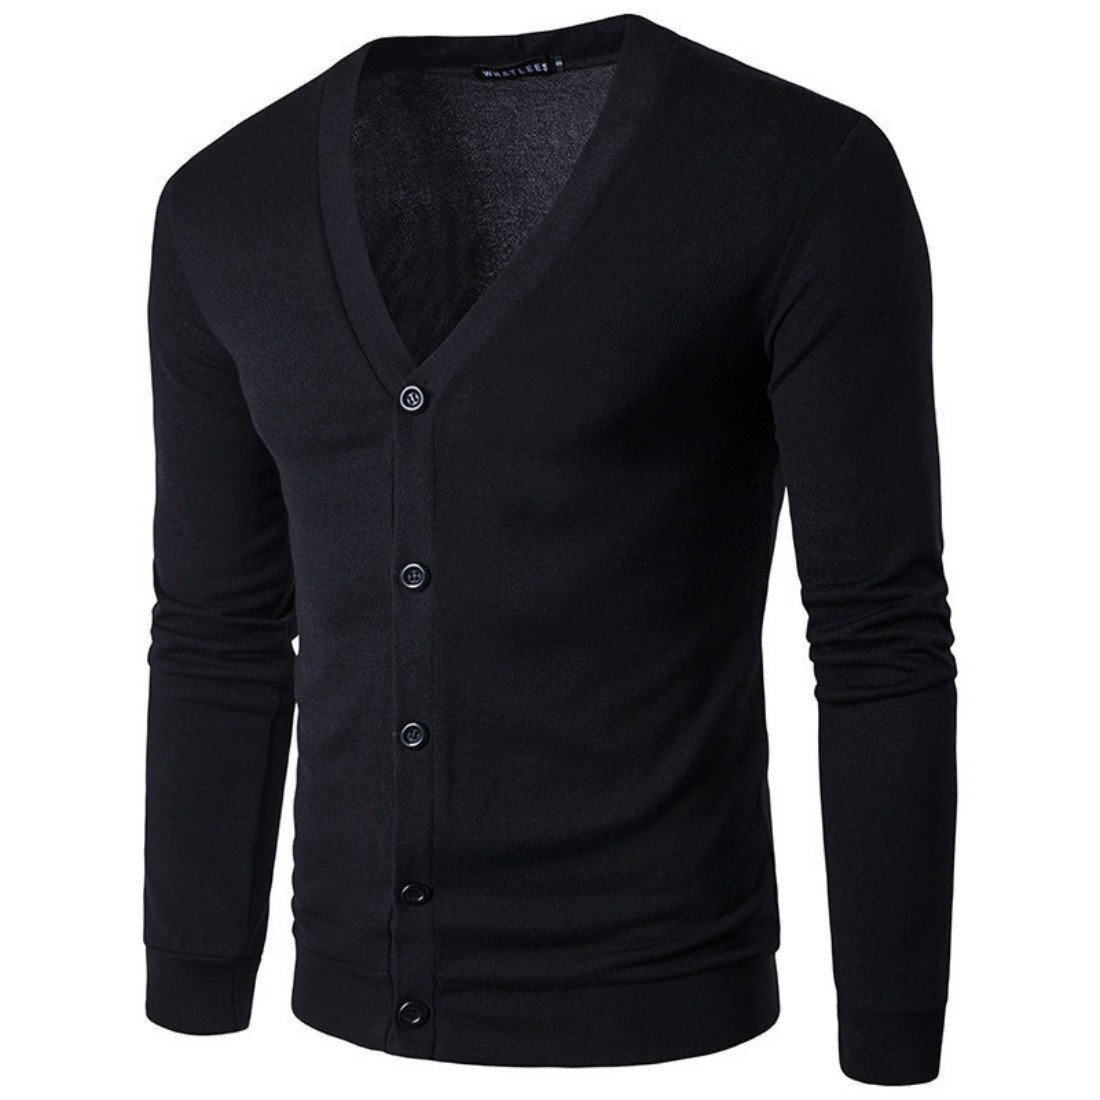 2017 Spring Summer New Men's Casual Sweater City Fashion V Collar Long Sleeved Cardigan Single-breasted Sweater